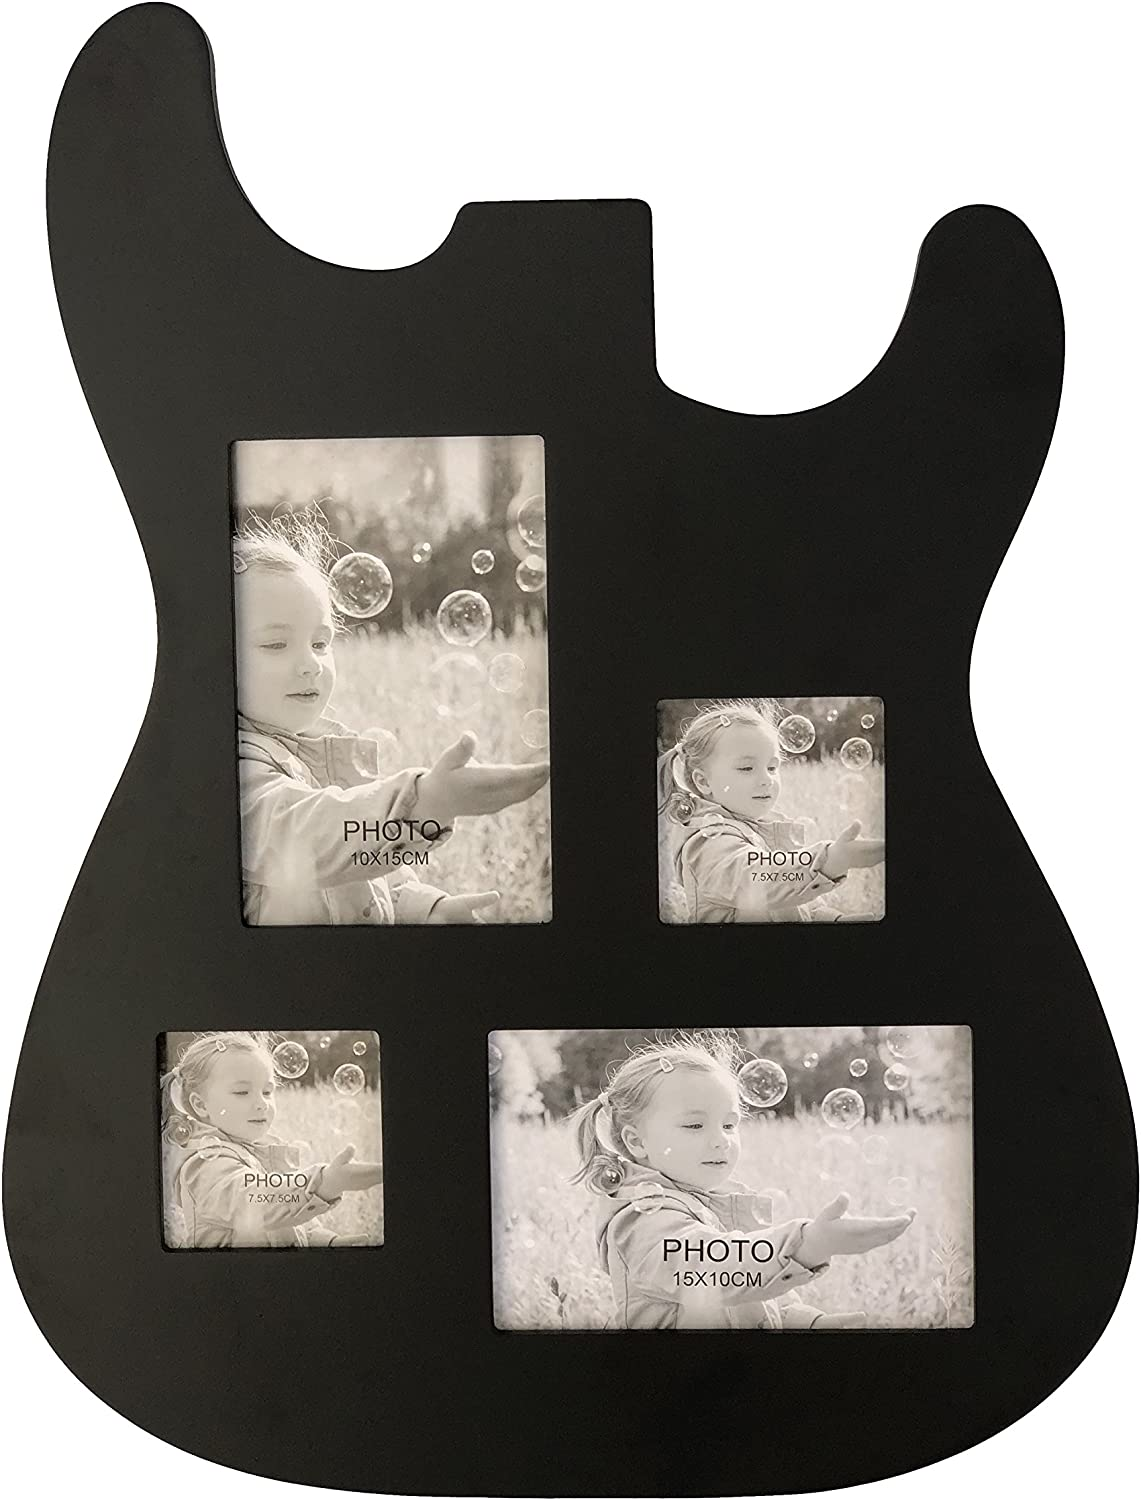 Guitar Body Shaped Music Picture Frame Surprise price 4x6 New popularity 3x4 B Photos for and